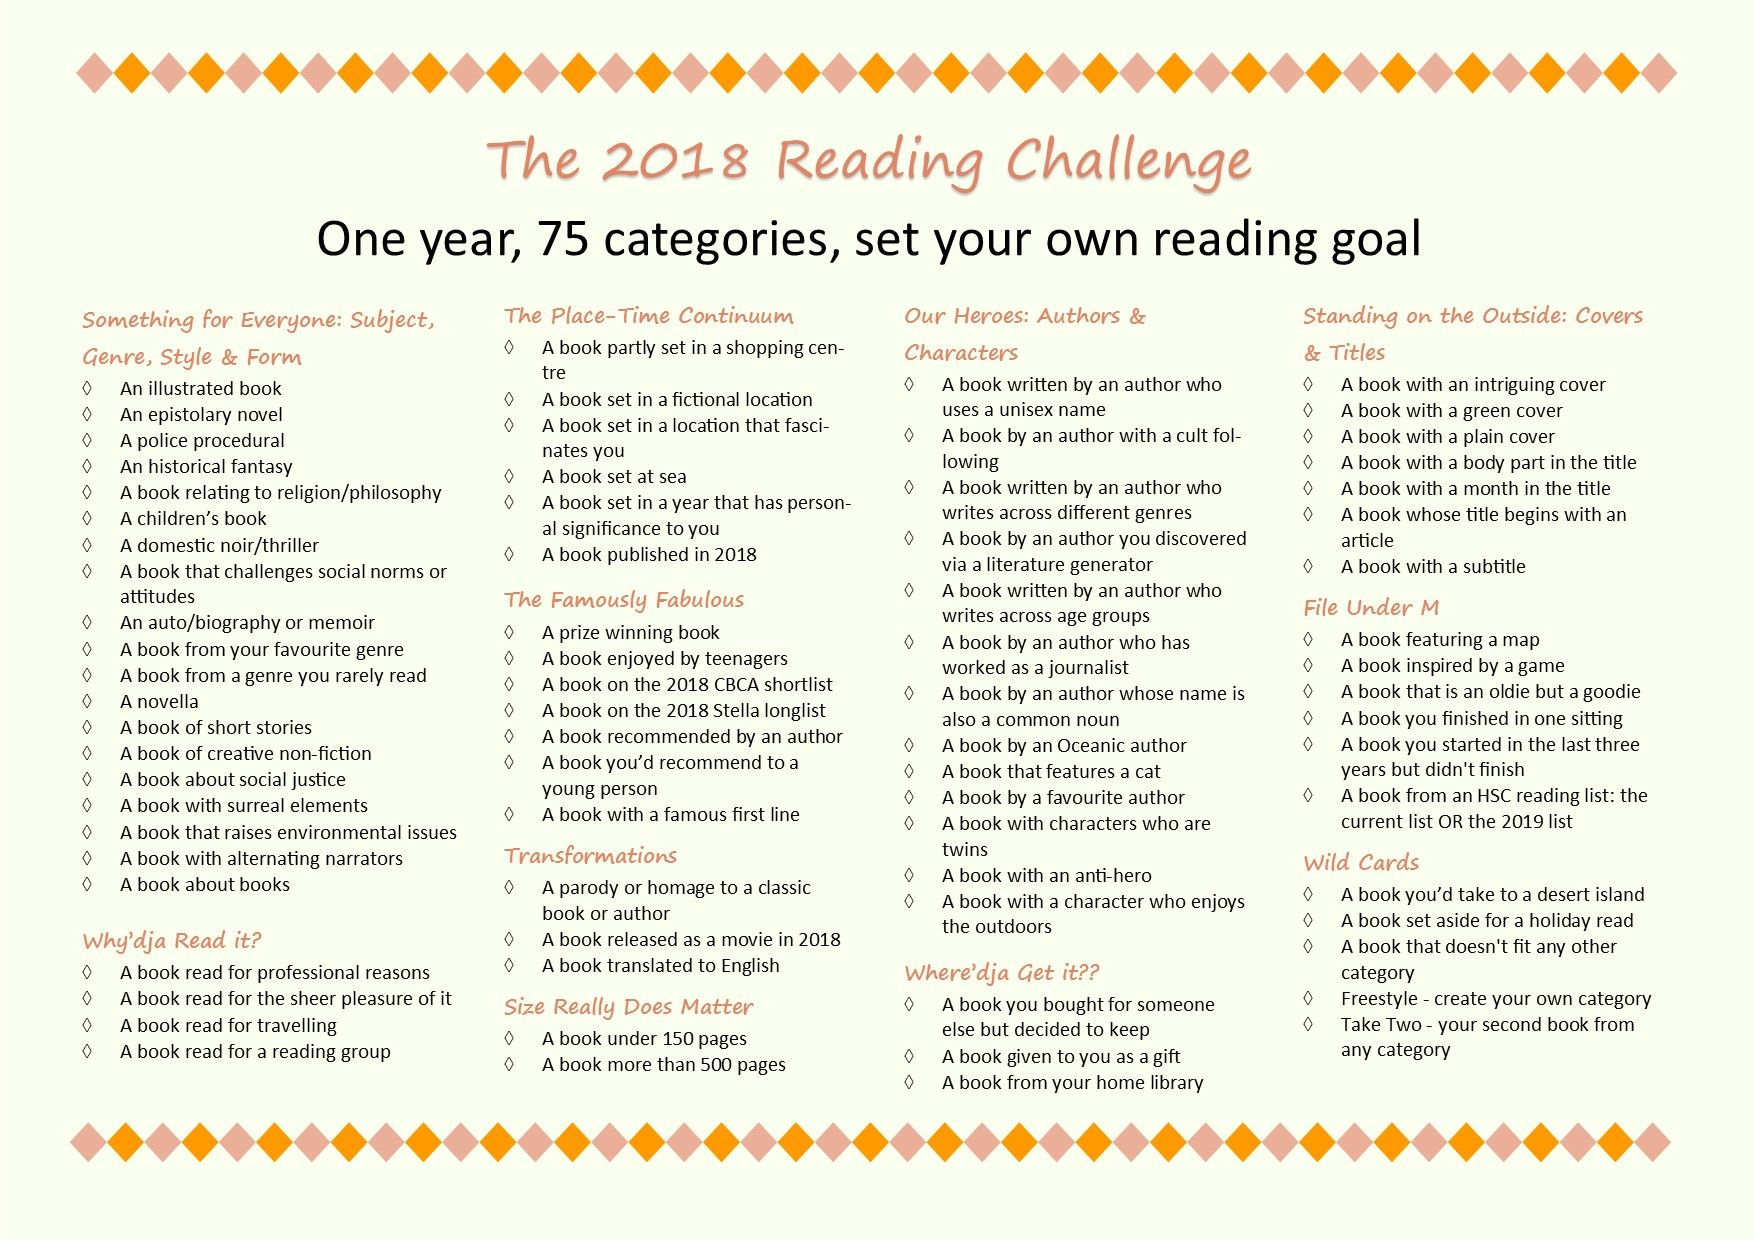 Pin by Nuppu on books | Pinterest | Reading challenge, Books and ...